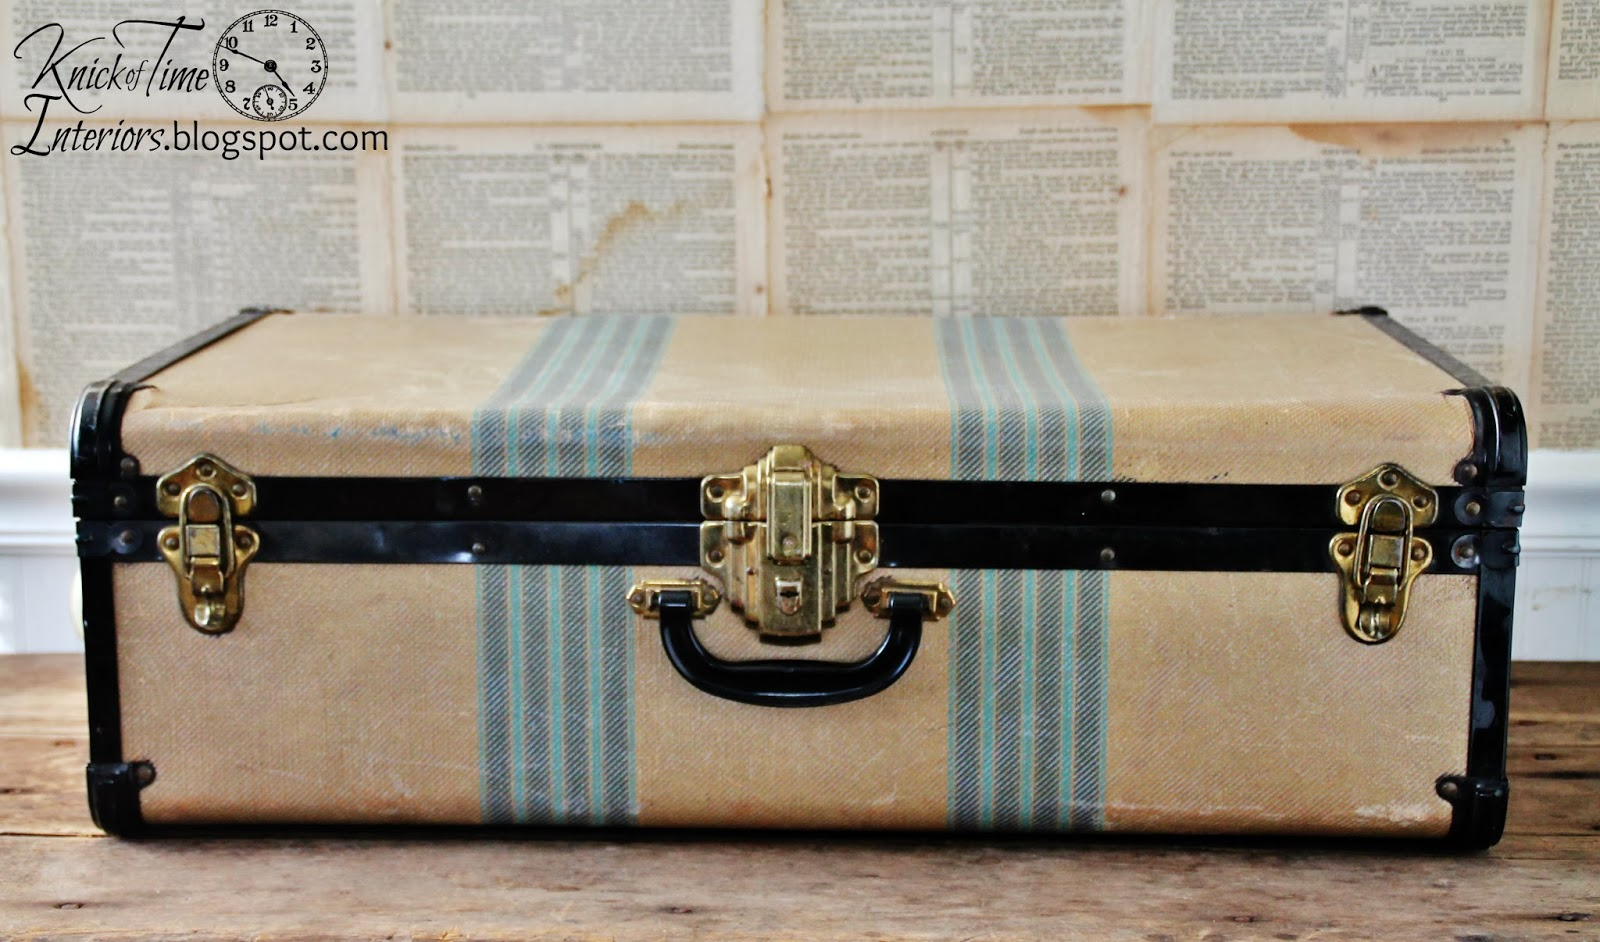 Antique Suitcase available from Knick of Time